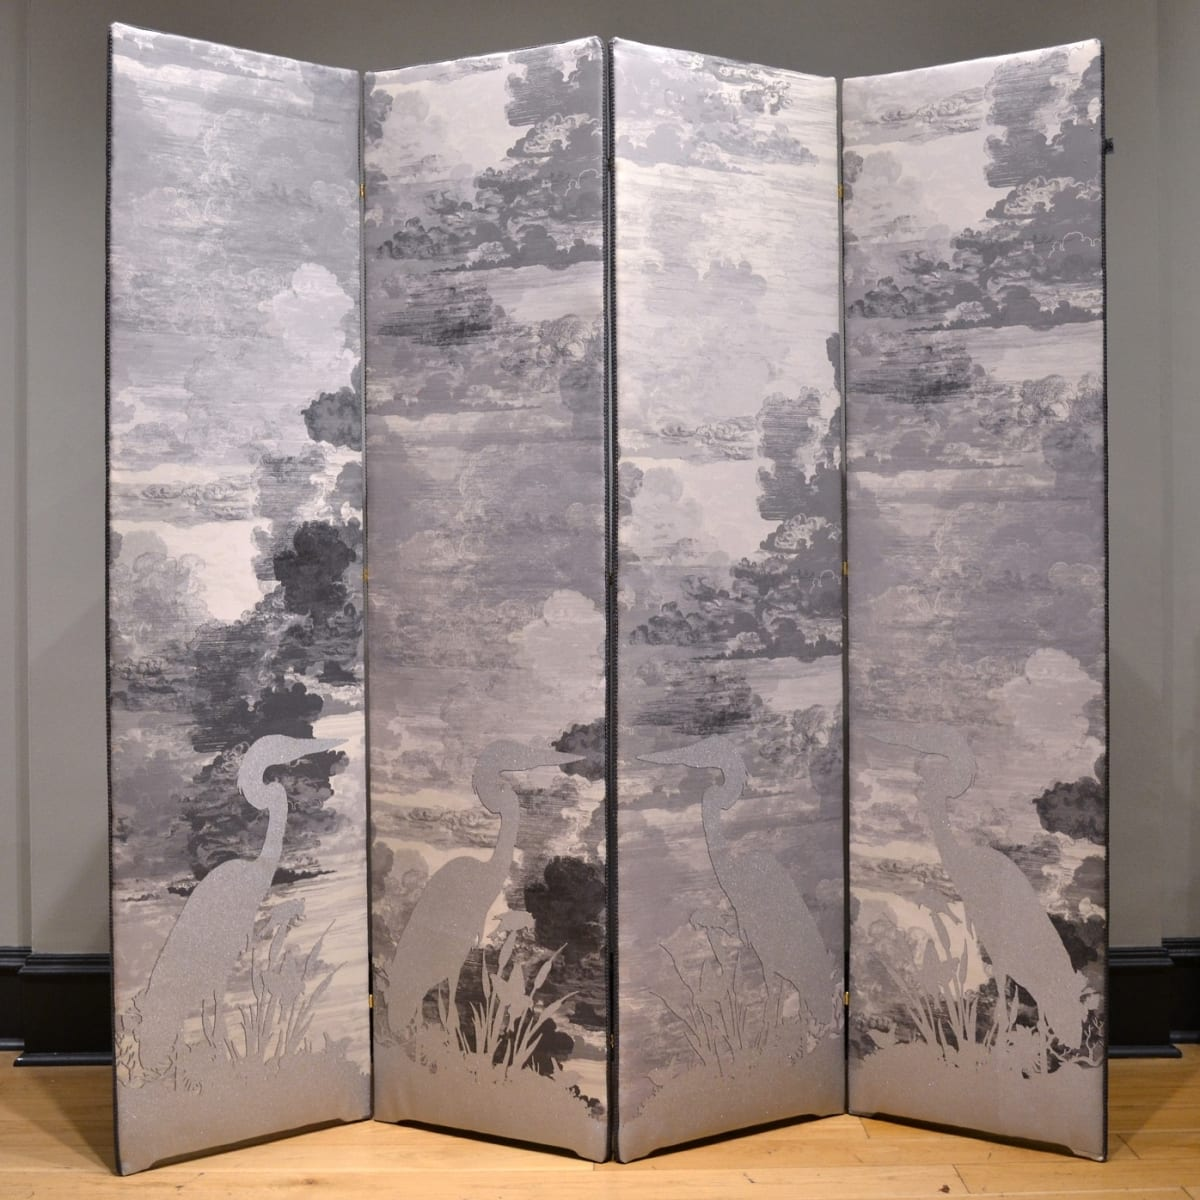 Timorous Beasties Grey Heron / Bee Eater Flock, 2019 folding screen upholstered in Cloud Toile fabric with one-off screen print design 183 x 188 cm (4 panels, 47 cm width each)